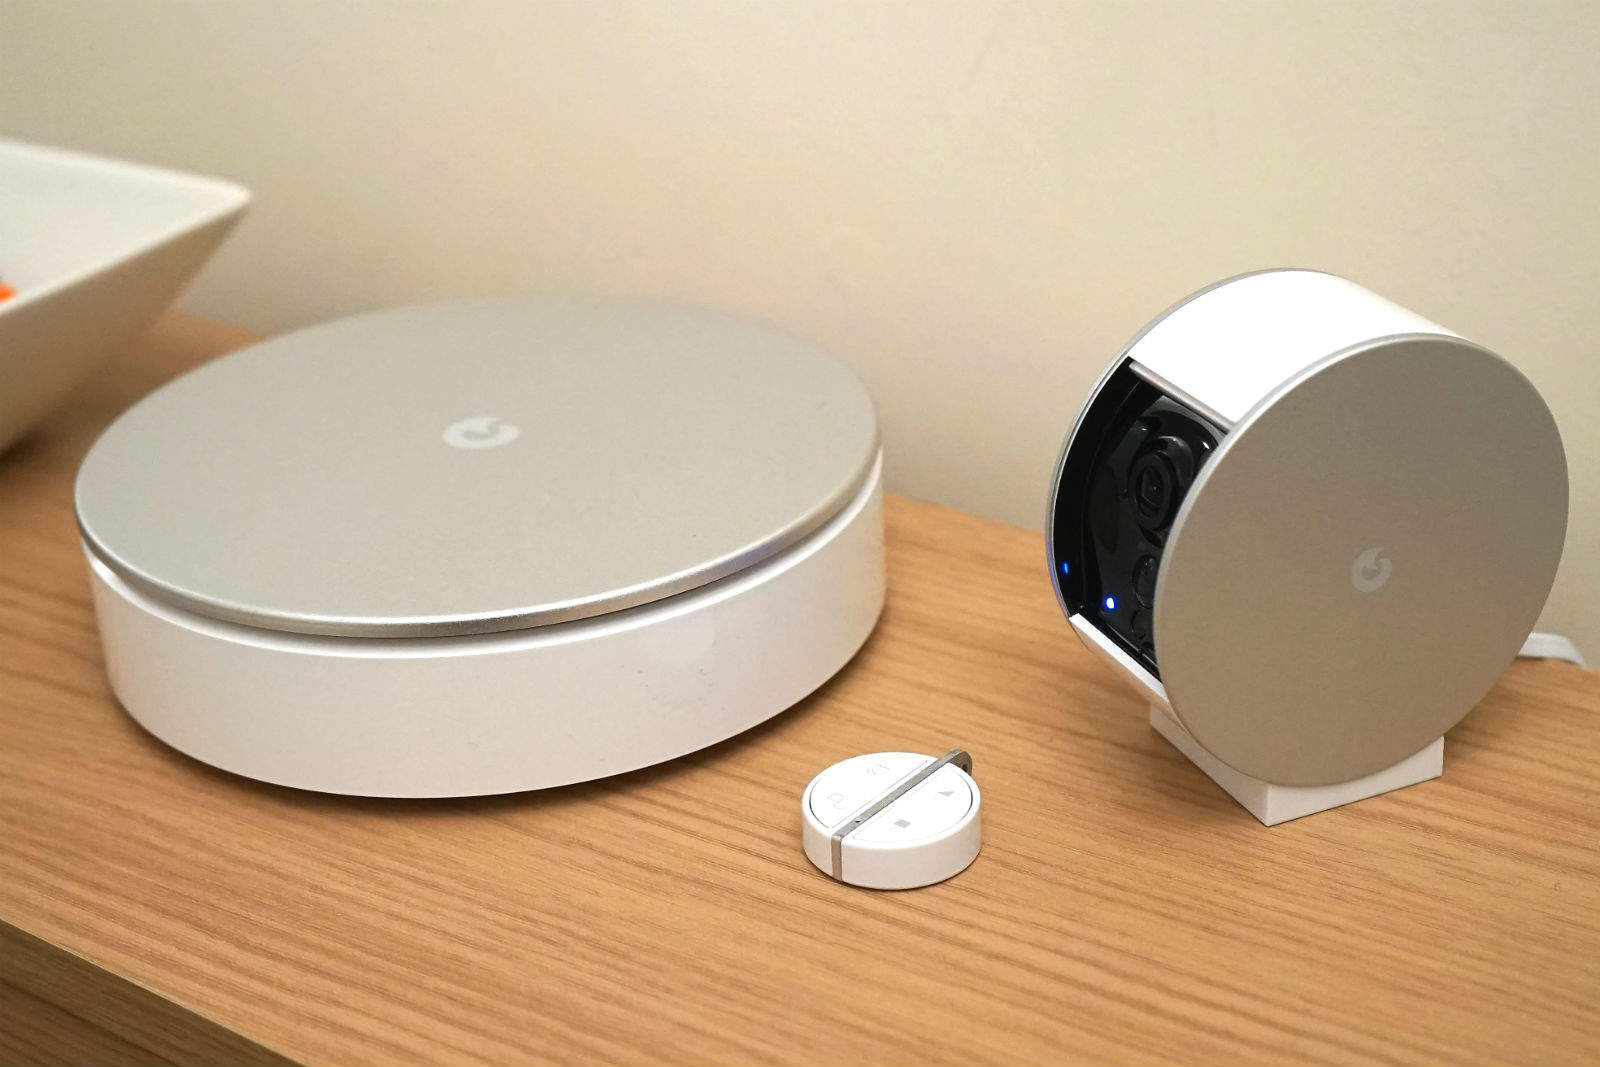 MyFox's wireless home security hardware works well but will cost you a pretty penny.